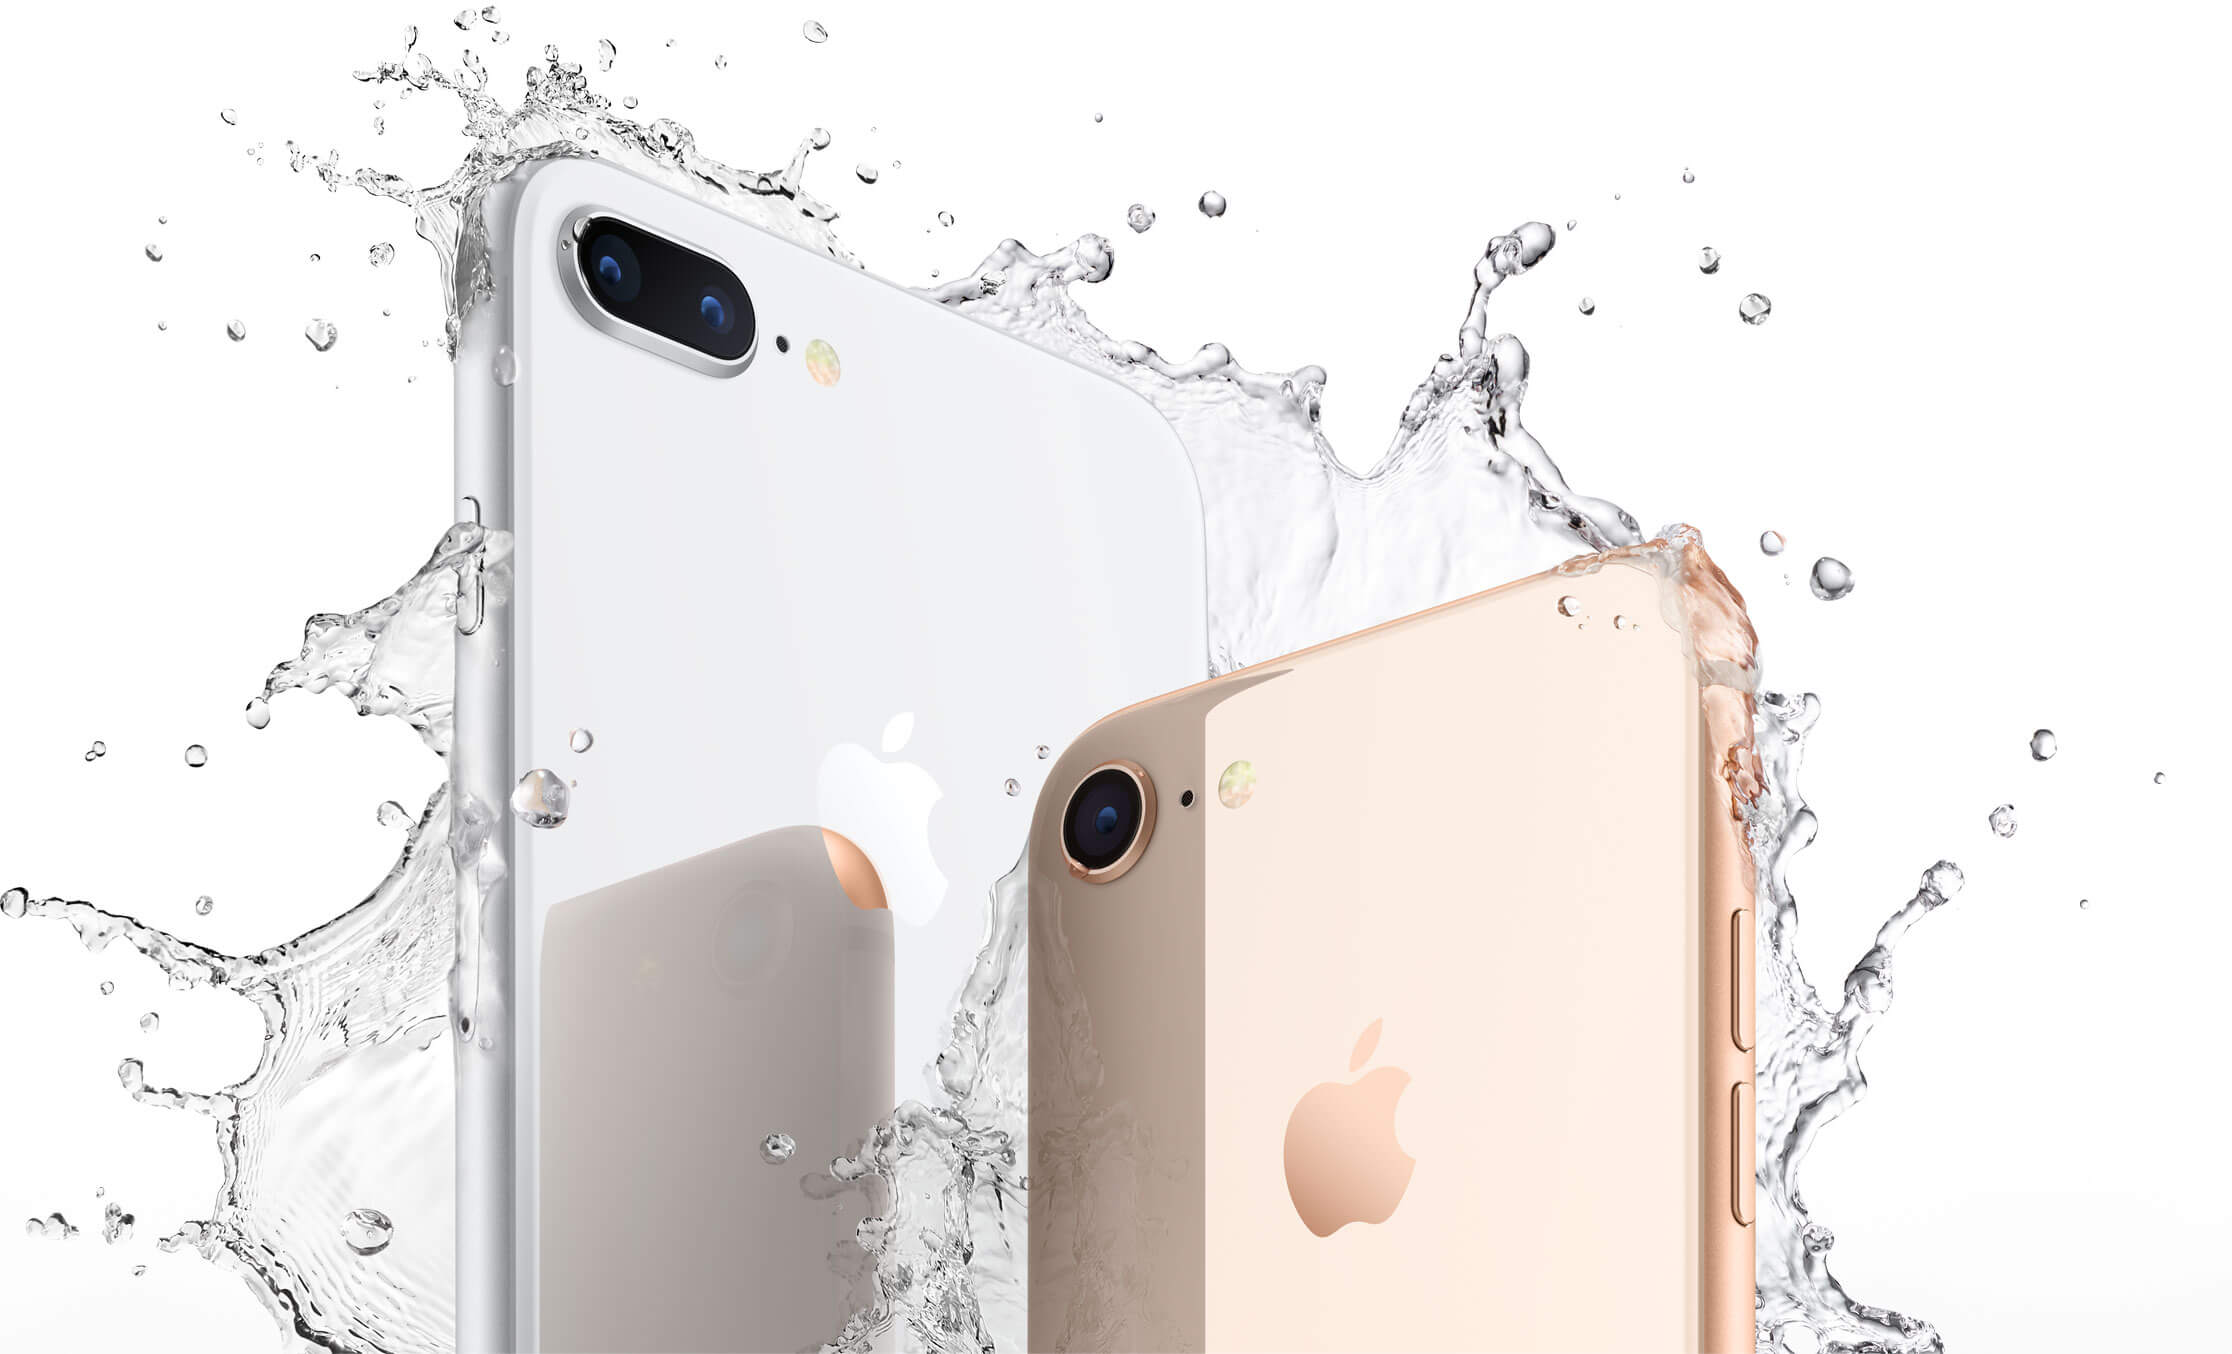 iPhone 8 Water